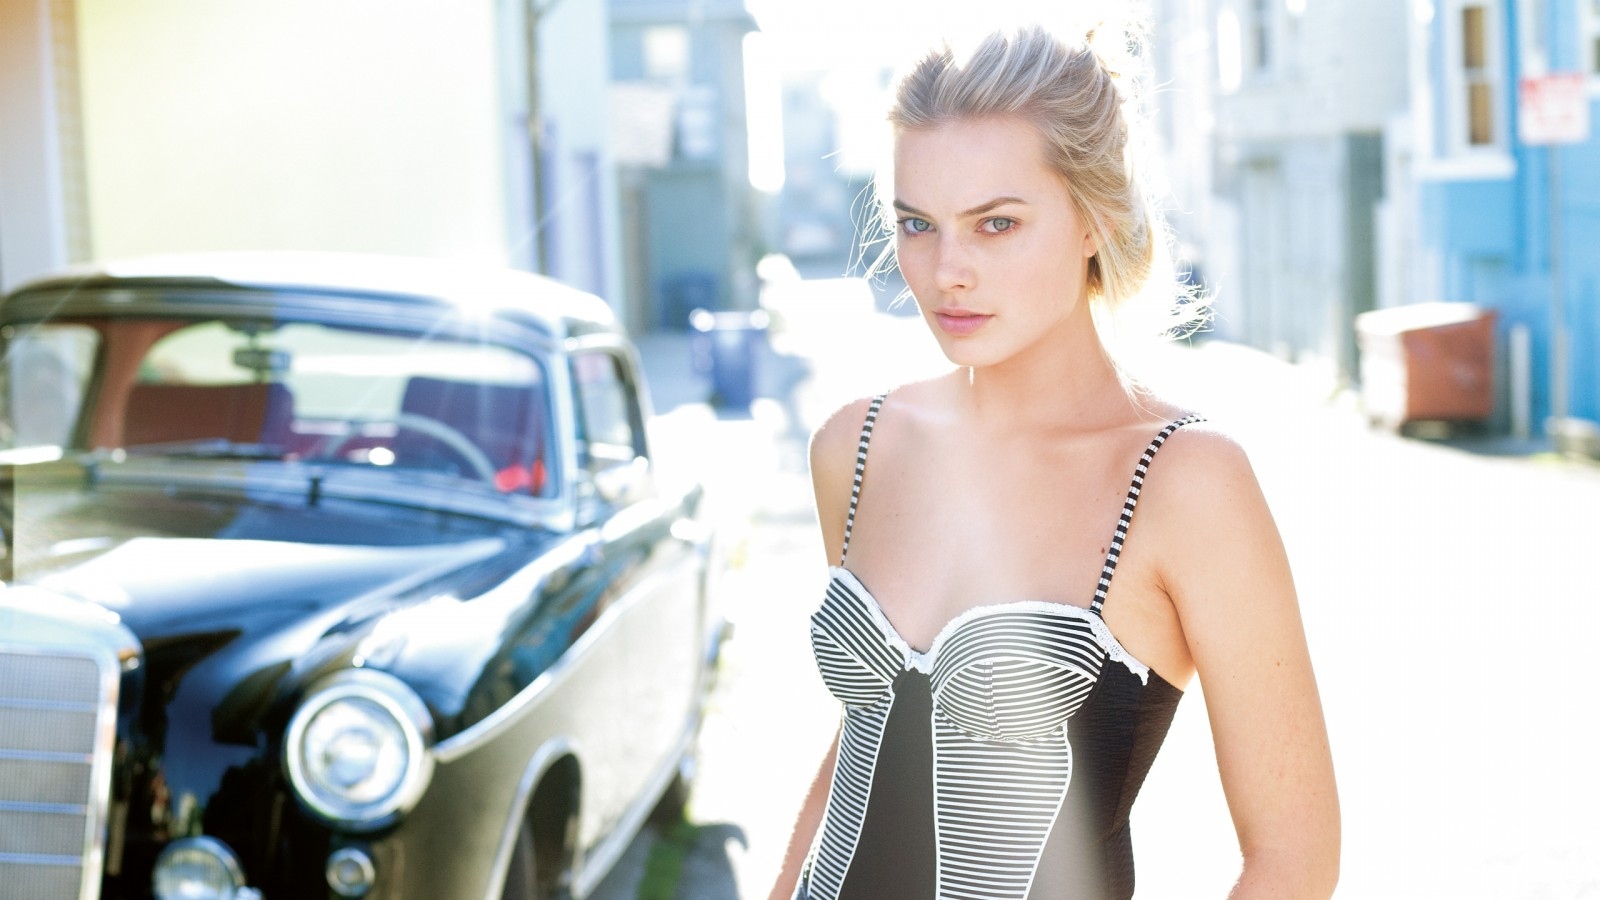 Margot Robbie 2016 Wallpapers HD Wallpapers ID 17505